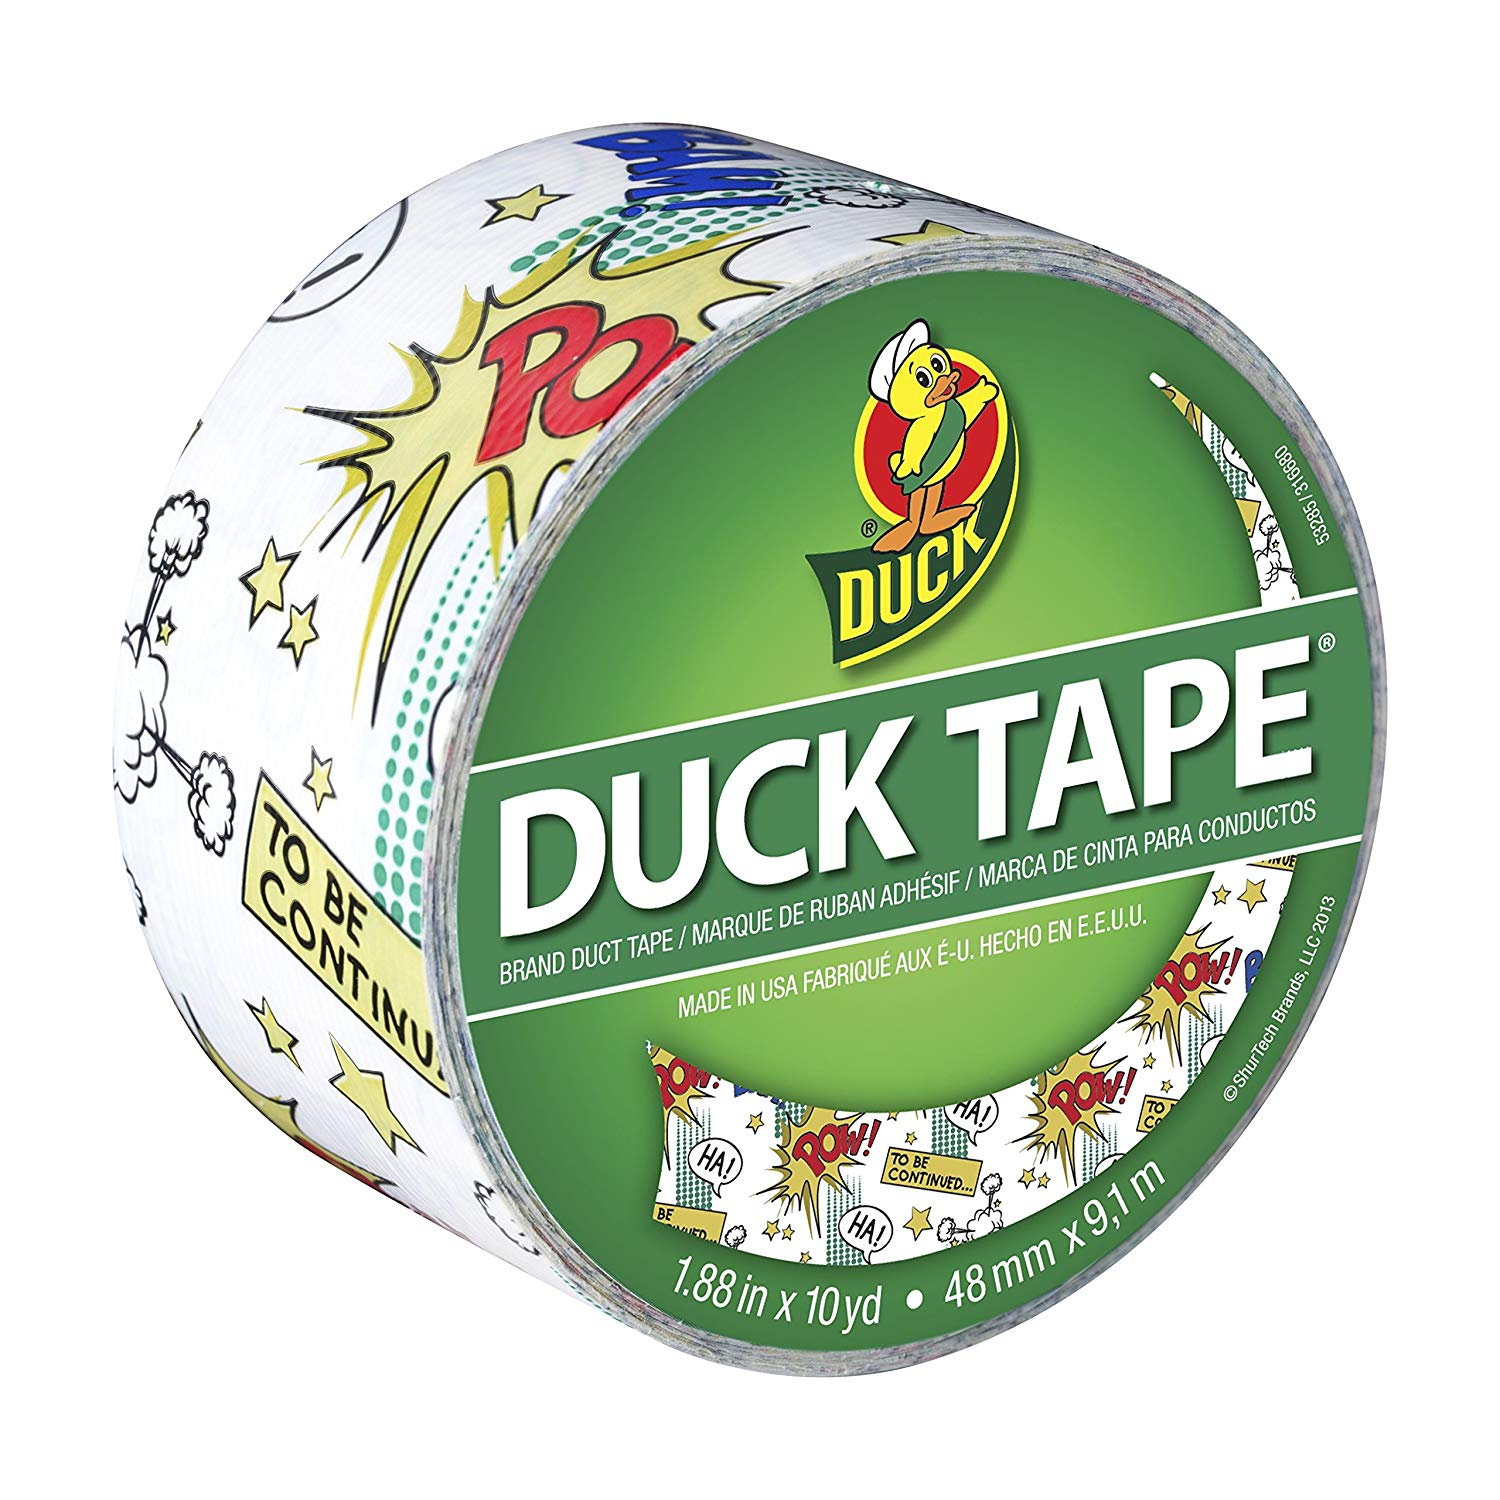 Duck Brand 282223 Printed Duct Tape, Comic Book, 1.88 Inches x 10 Yards, Single Roll